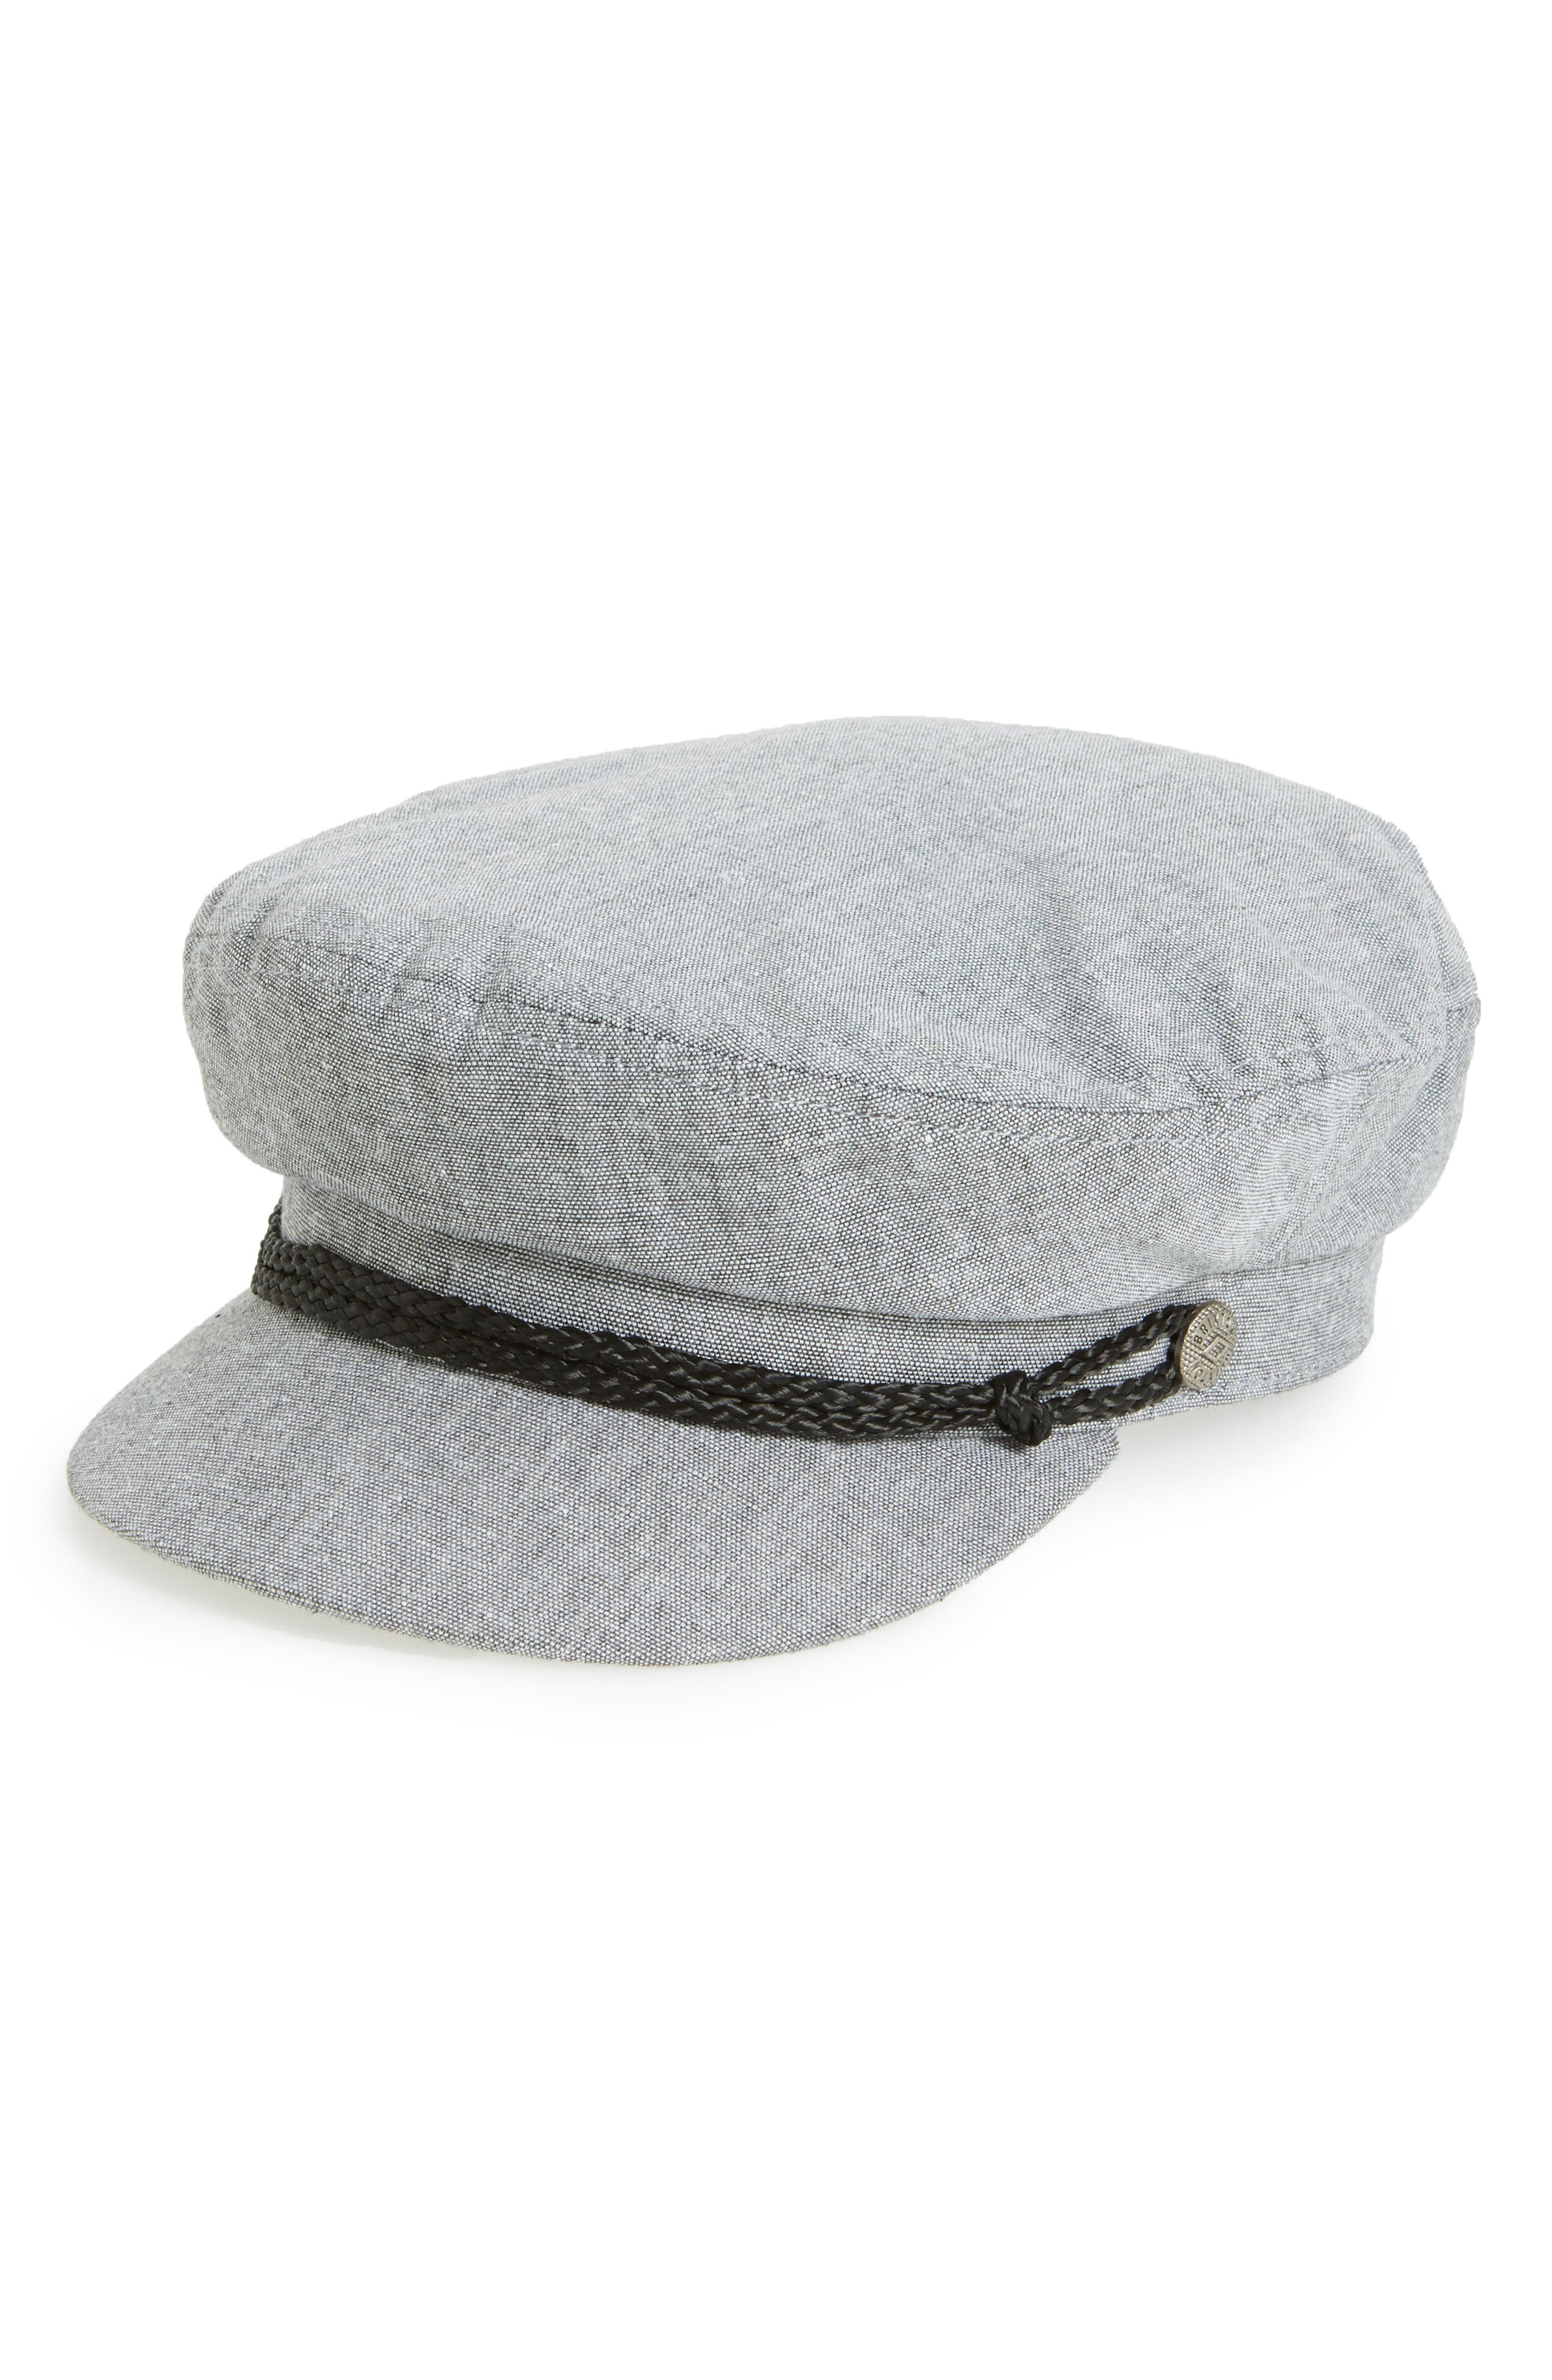 Fiddler Fisherman Cap,                             Main thumbnail 1, color,                             Grey Chambray